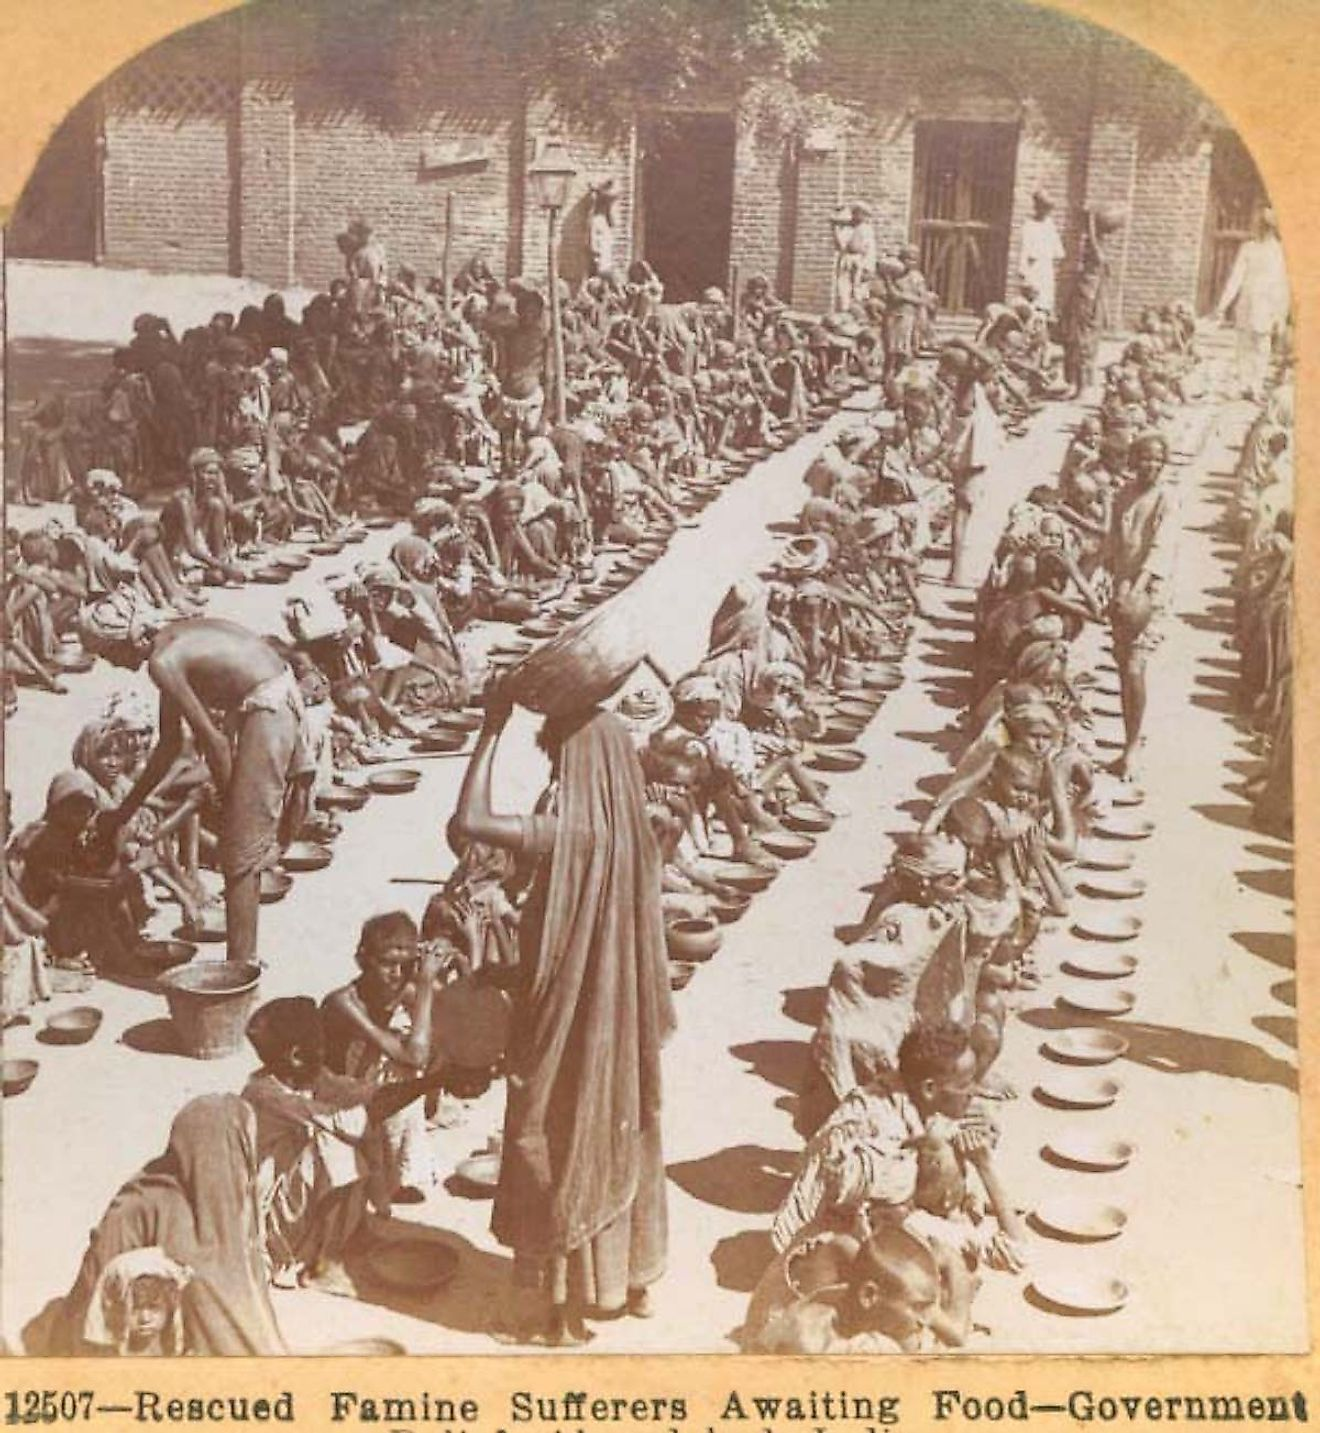 Government famine relief, c. 1901, Ahmedabad